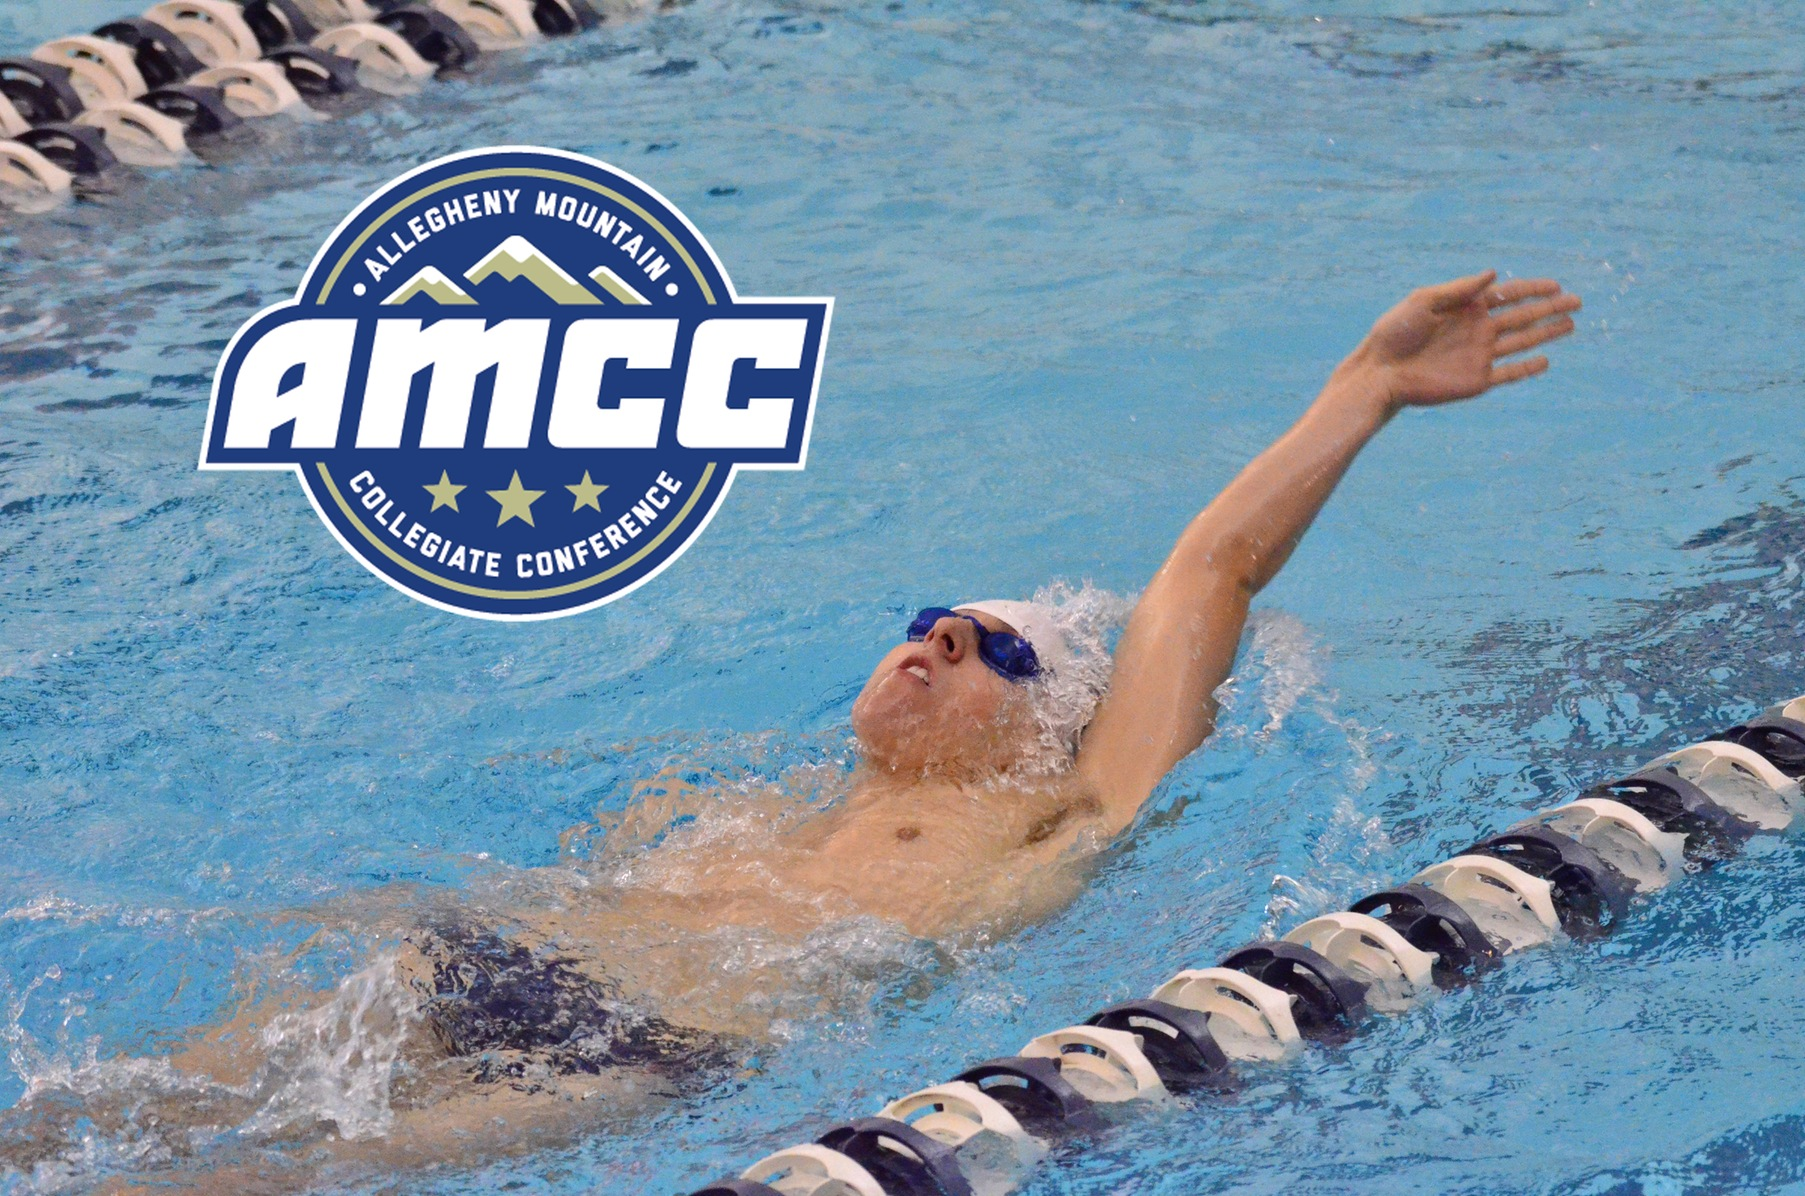 Patterson Selected AMCC Athlete of the Week